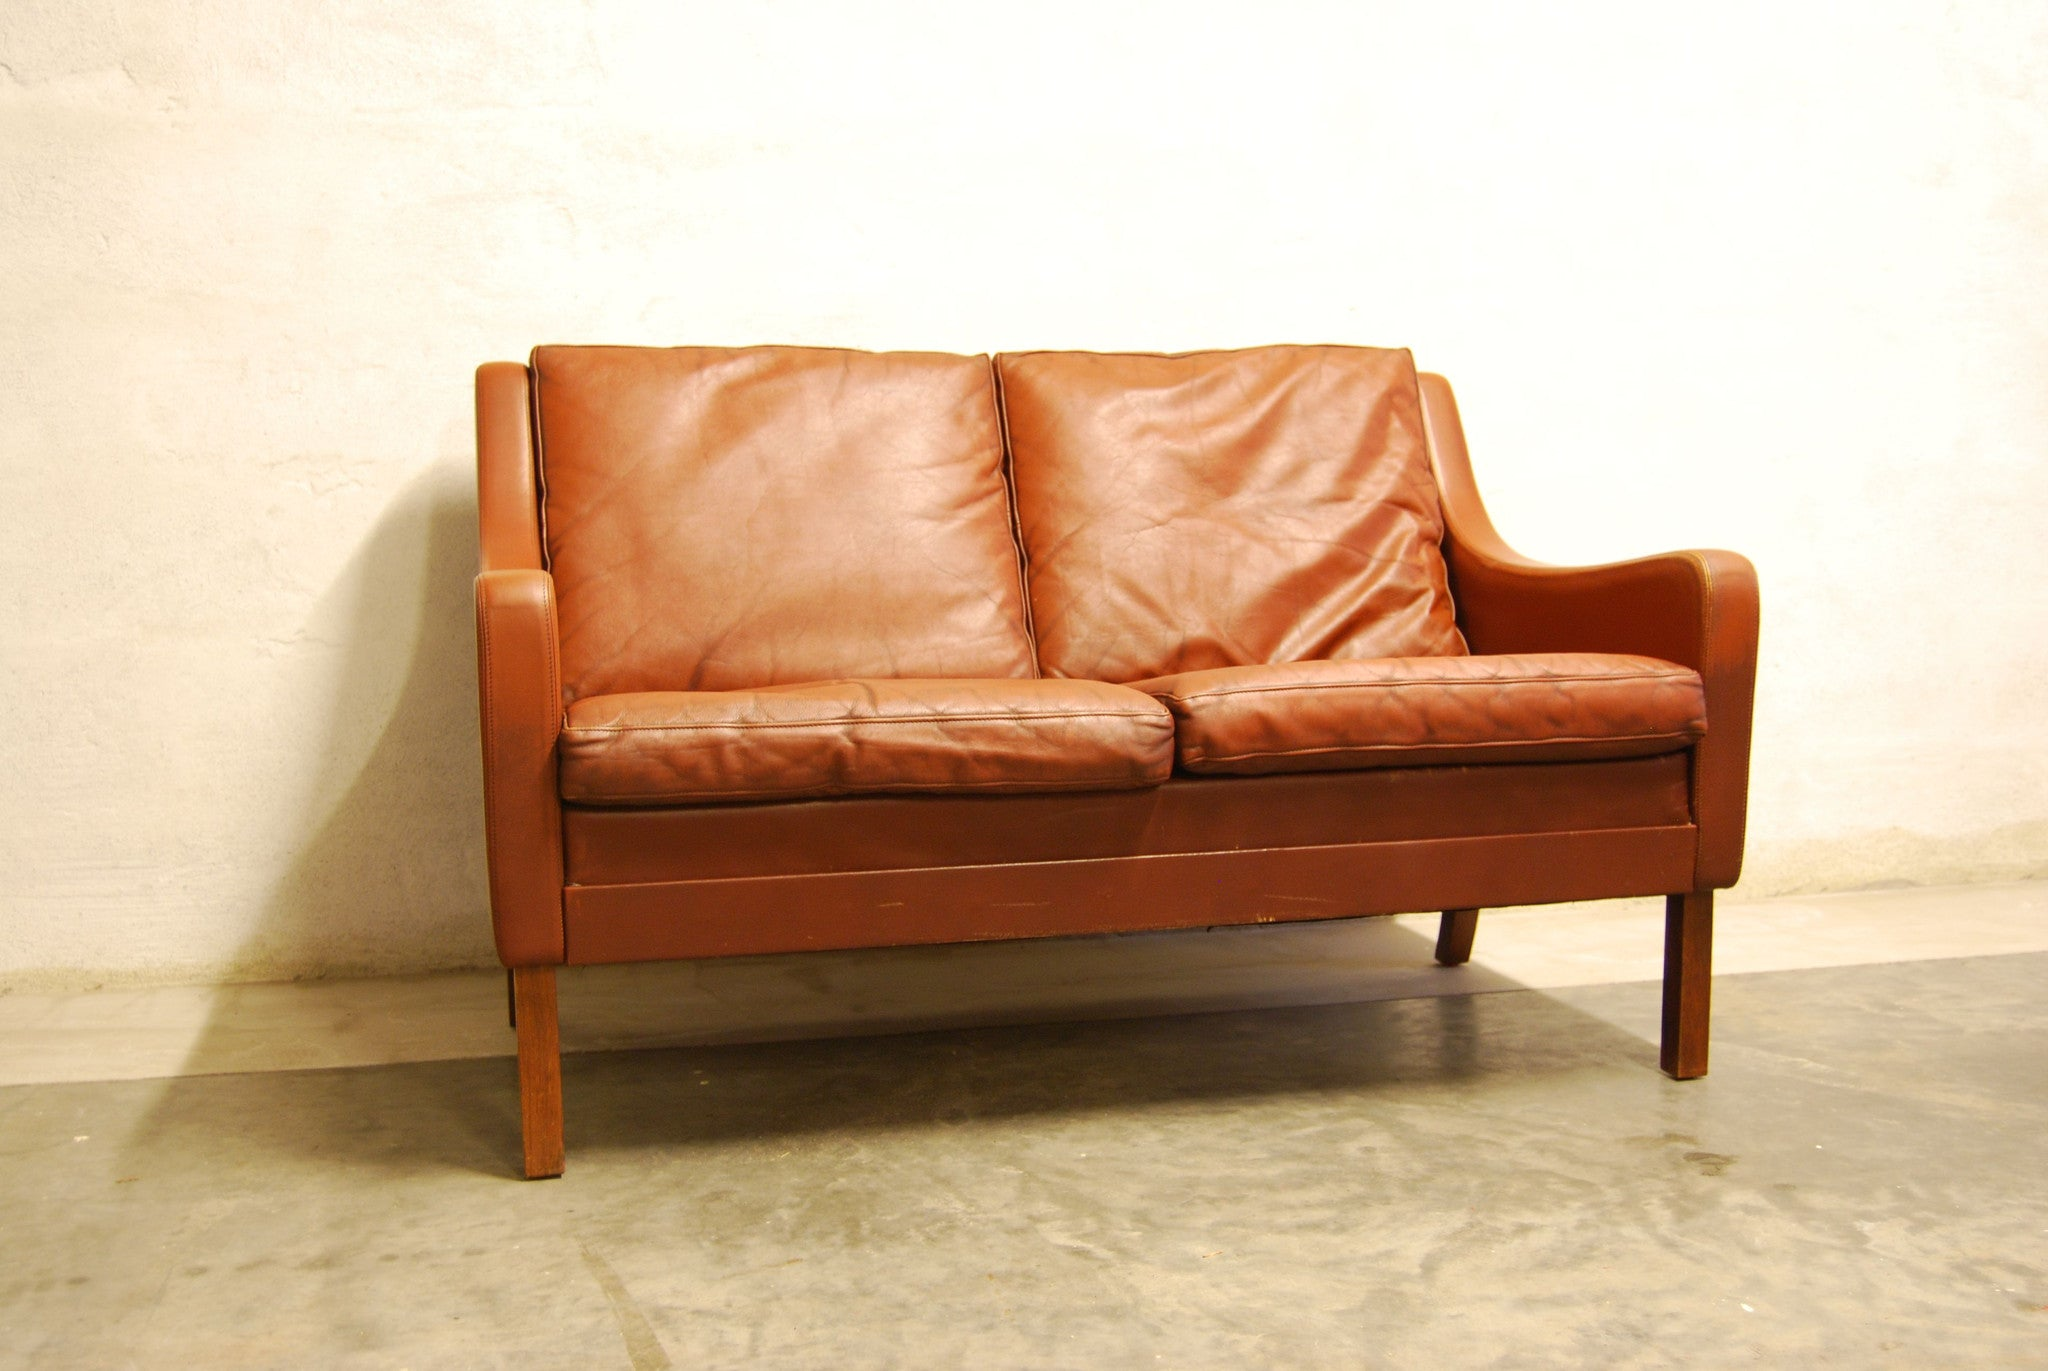 Maroon leather two seater